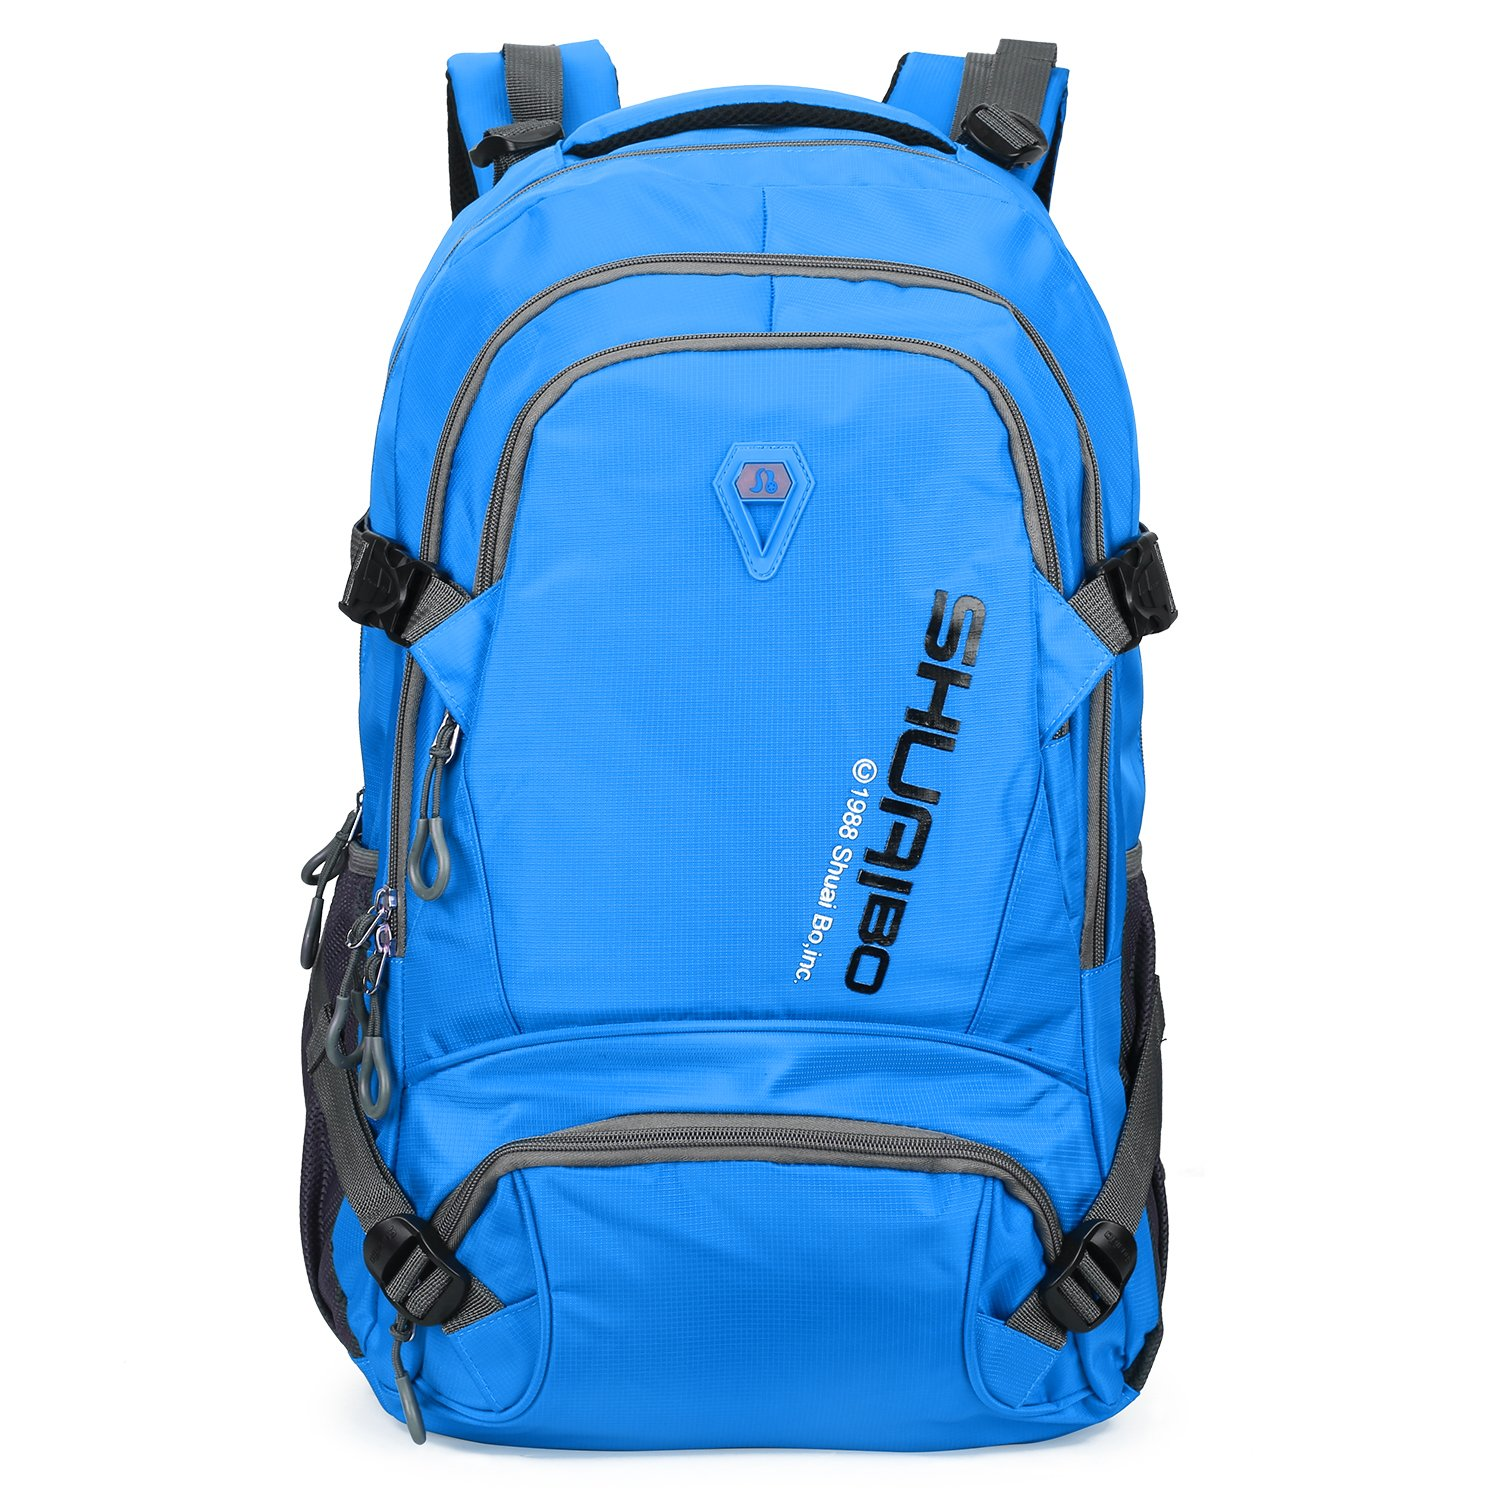 Hiking Backpack Mountaintop 32L Waterproof Durable Travel Backpack Men and Women for Hiking, Camping, Cycling, Biking, Climbing, Hunting, and Outdoor Activities